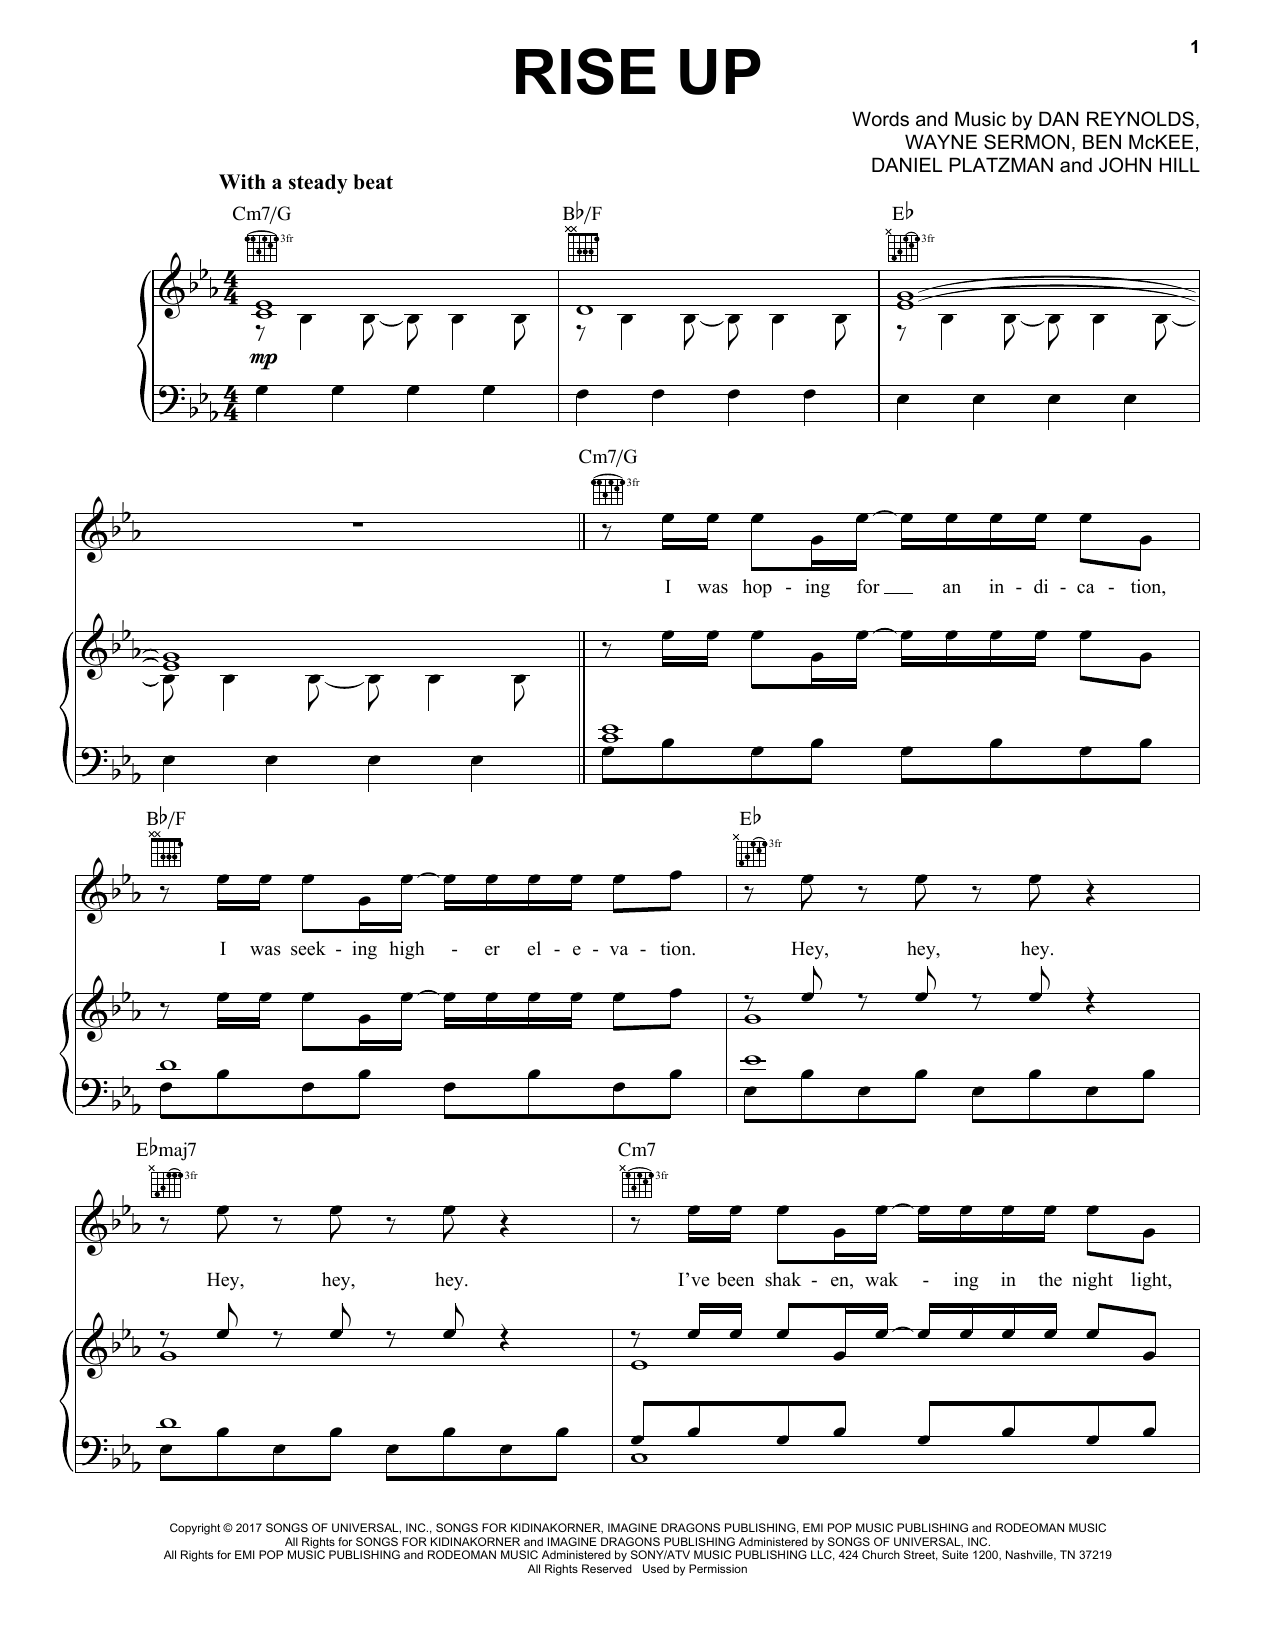 Imagine Dragons 'Rise Up' Sheet Music Notes, Chords | Download Printable  Piano, Vocal & Guitar (Right-Hand Melody) - SKU: 189603